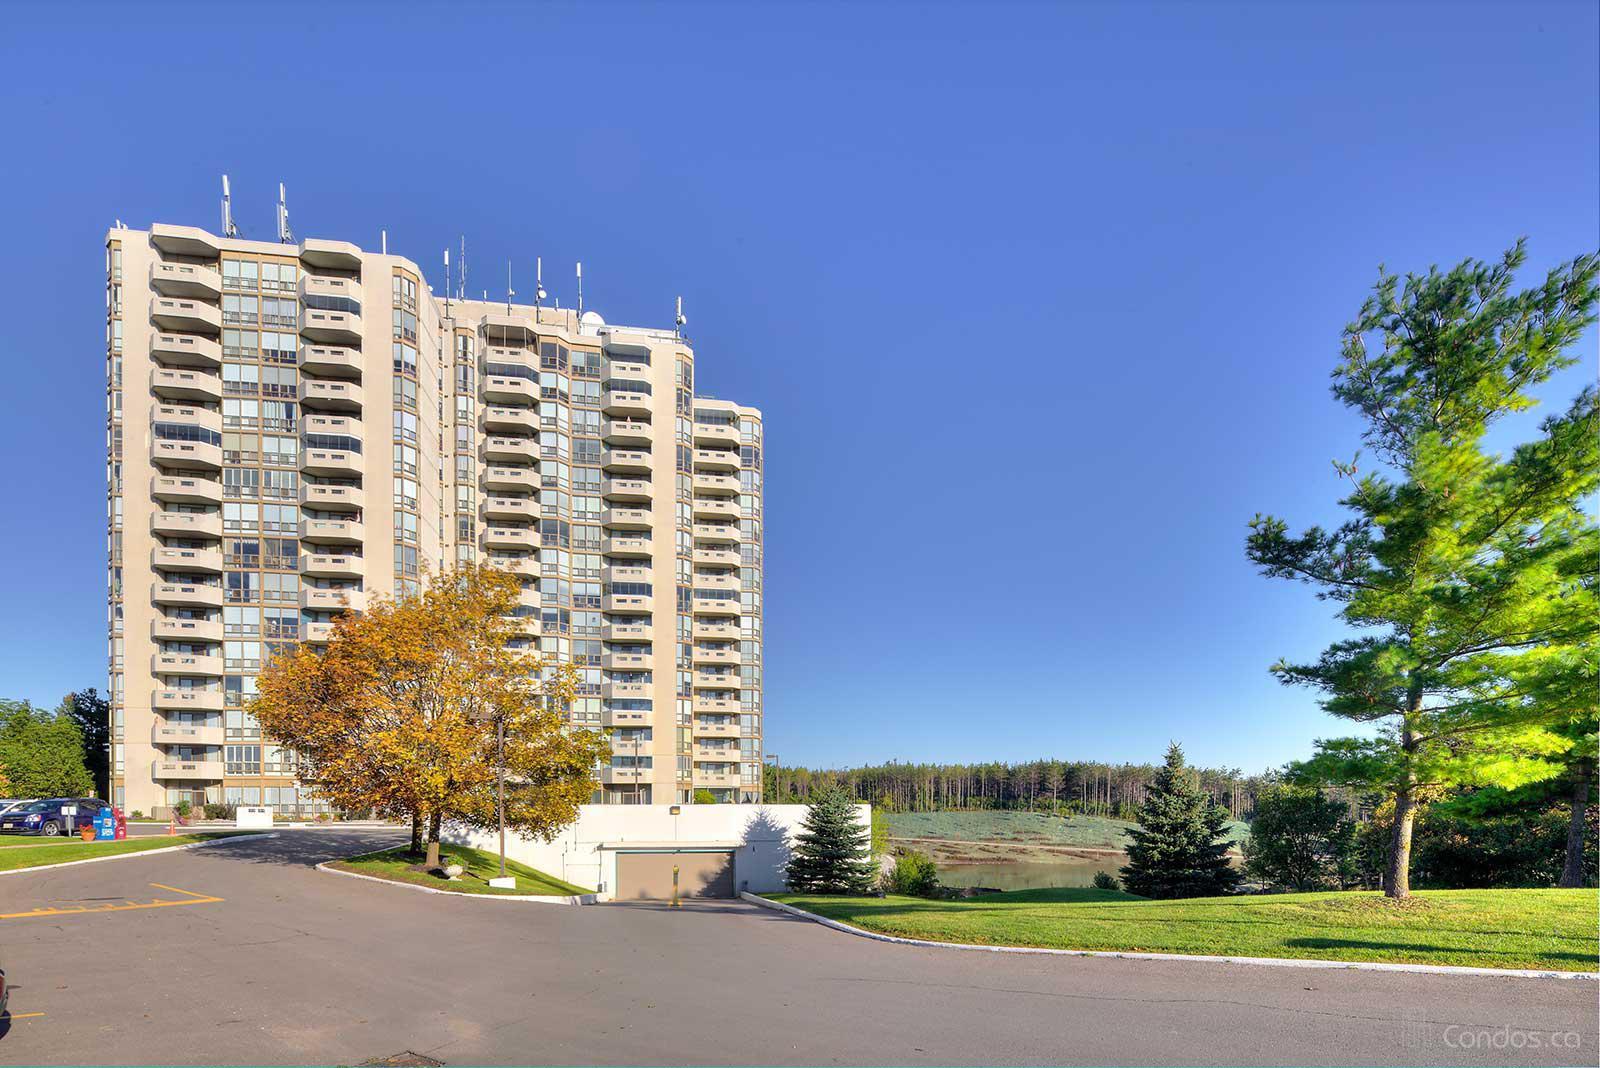 The Sands Condo at 20 McFarlane Dr, Halton Hills 1